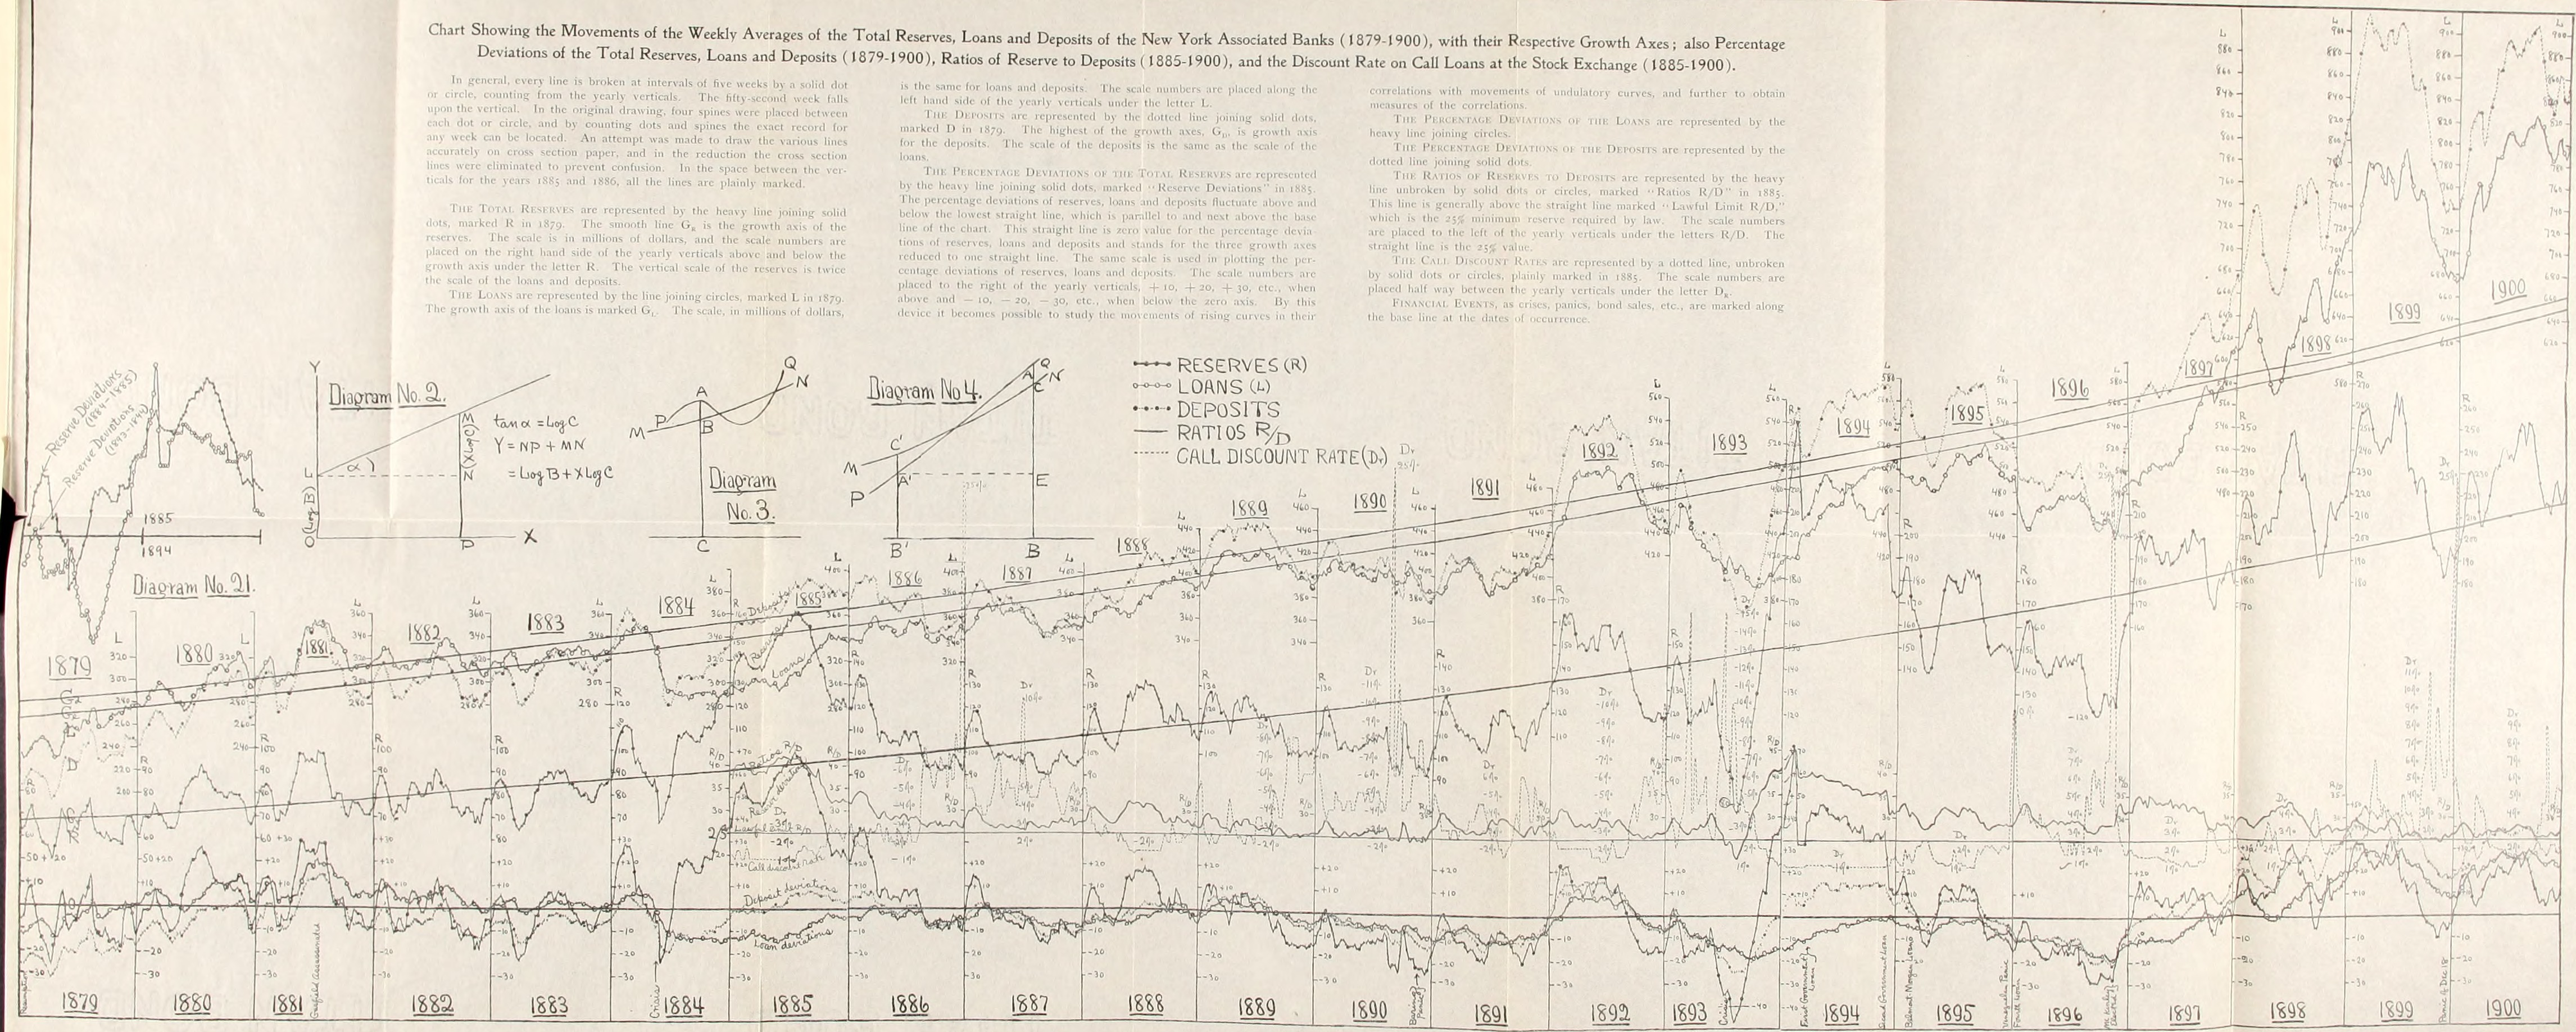 Historical Money Market Rates Chart: Statistical studies in the New York money-market; preceded by ,Chart